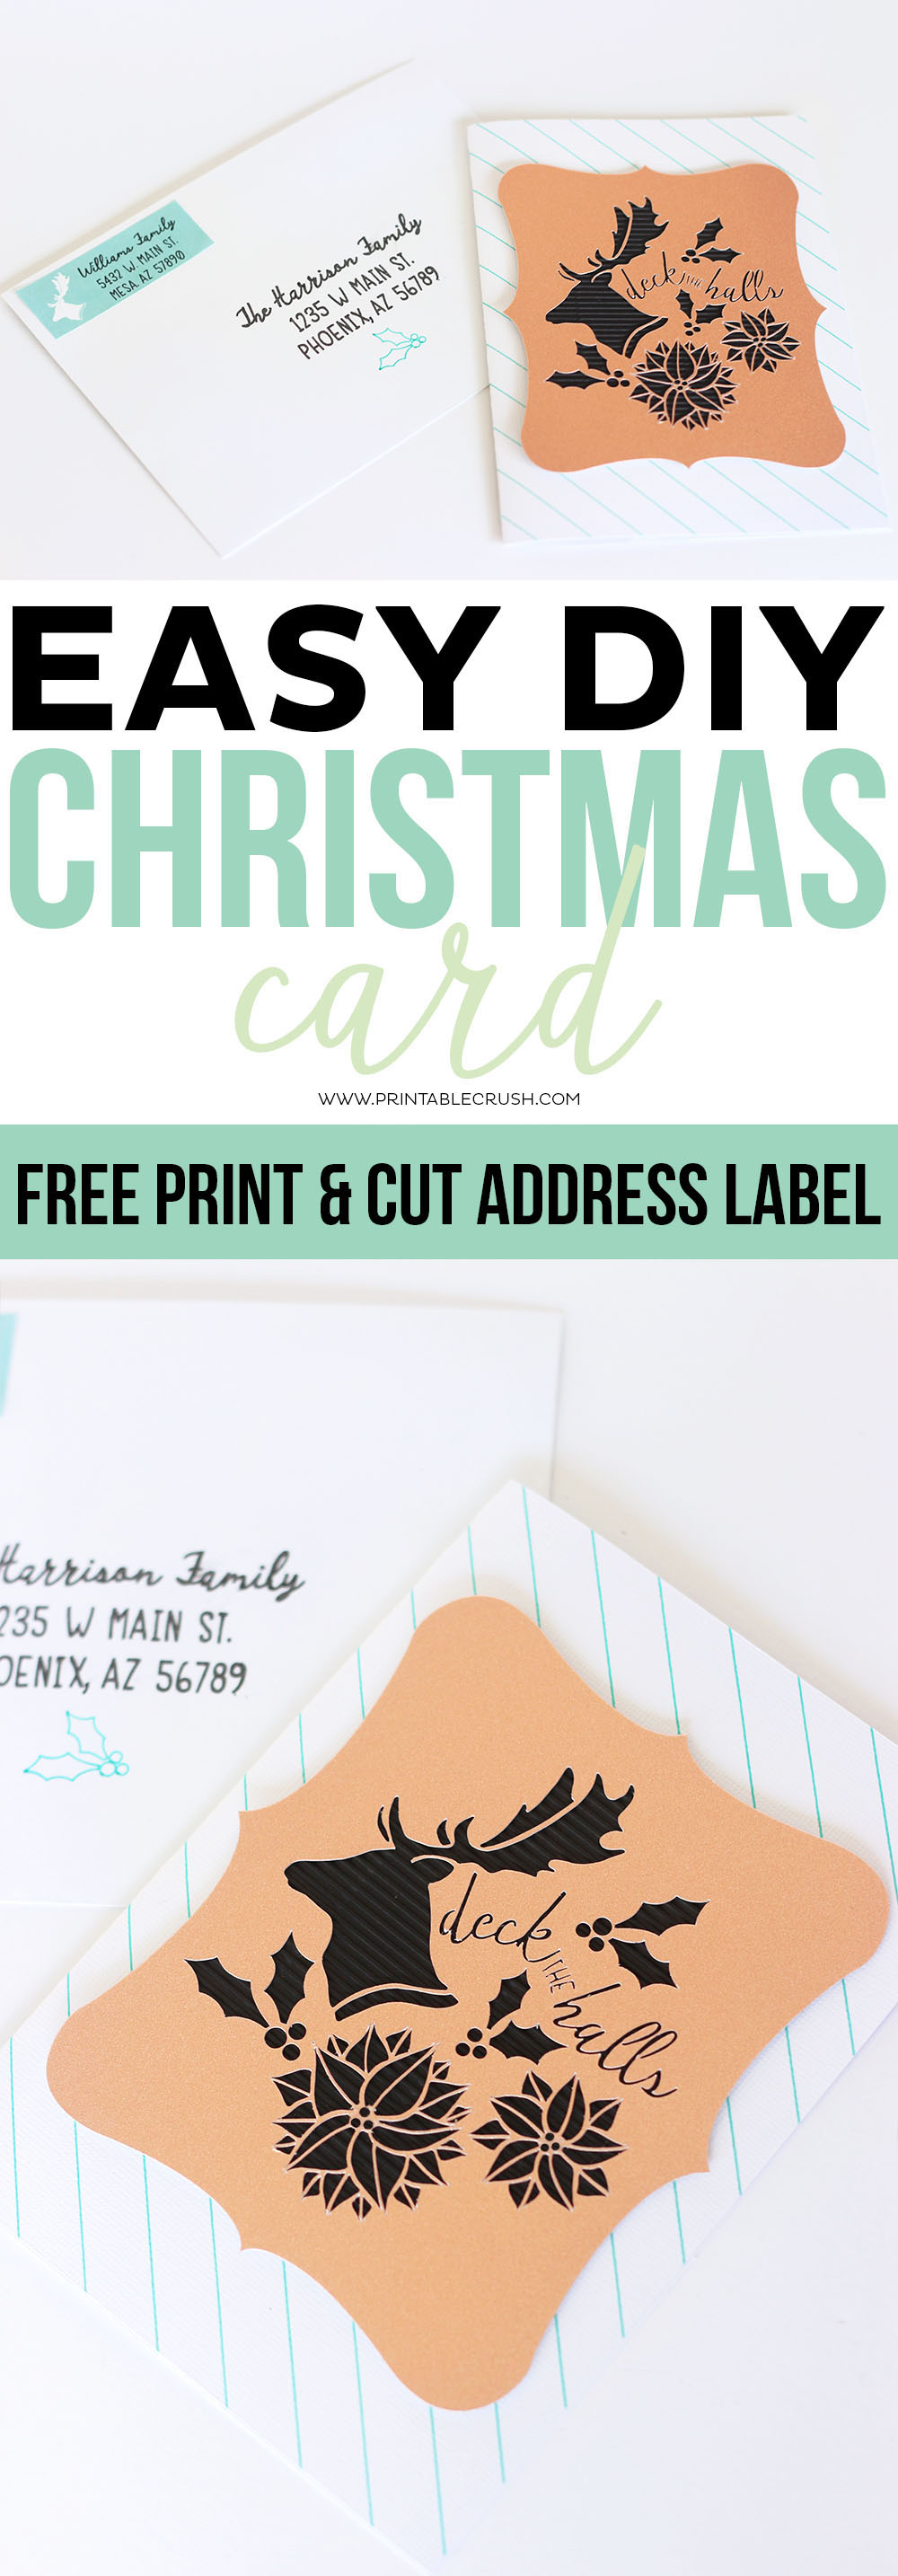 This Easy DIY Christmas Card tutorial also comes with a FREE Printable Address Label! You can customize the paper, colors, textures, and more. via @printablecrush